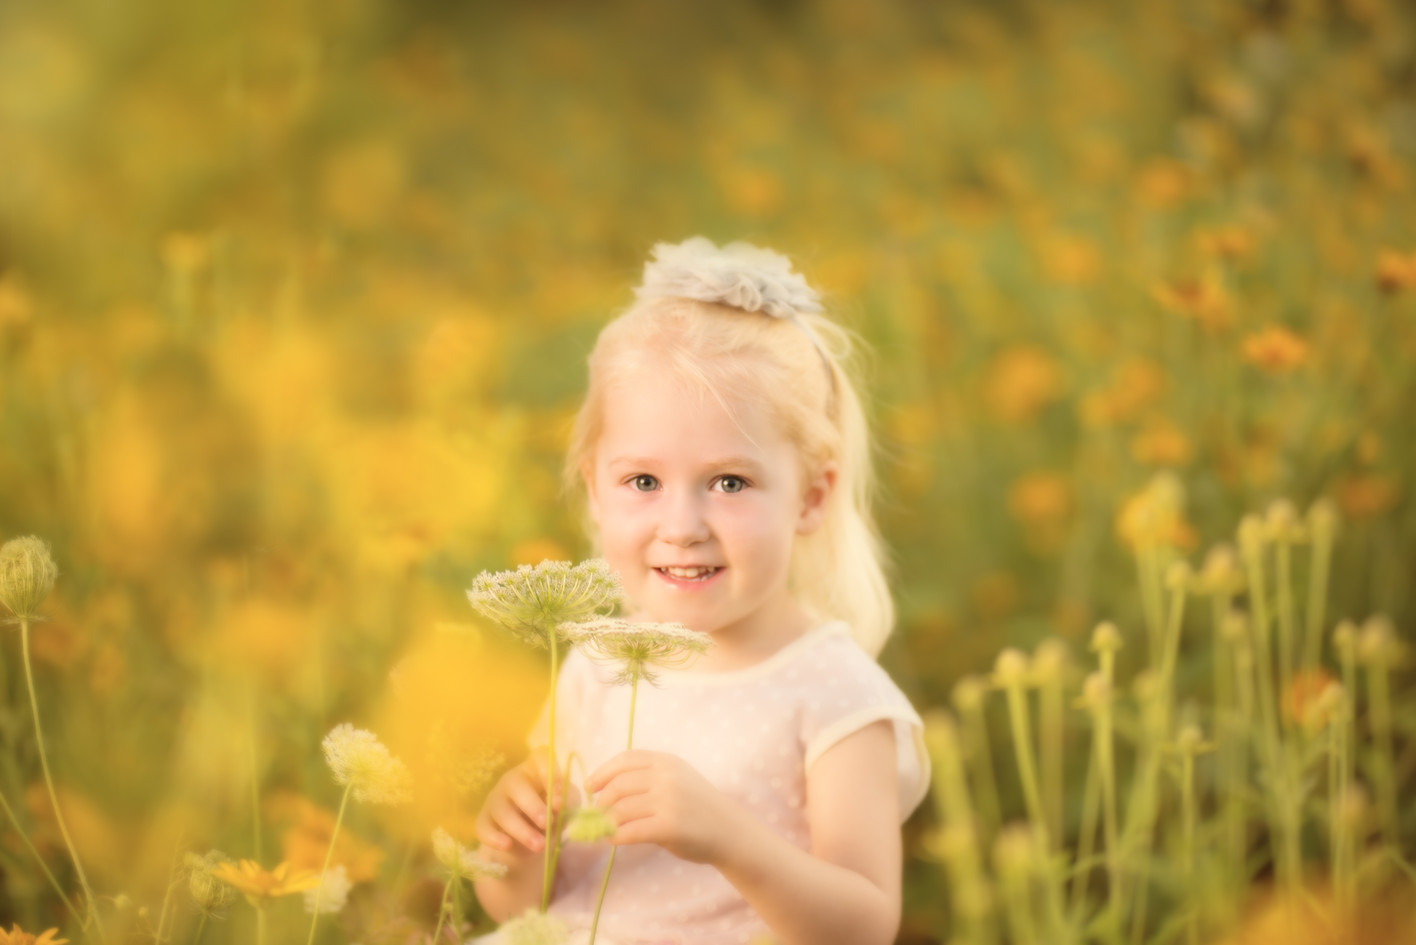 Children's wild flower field photography